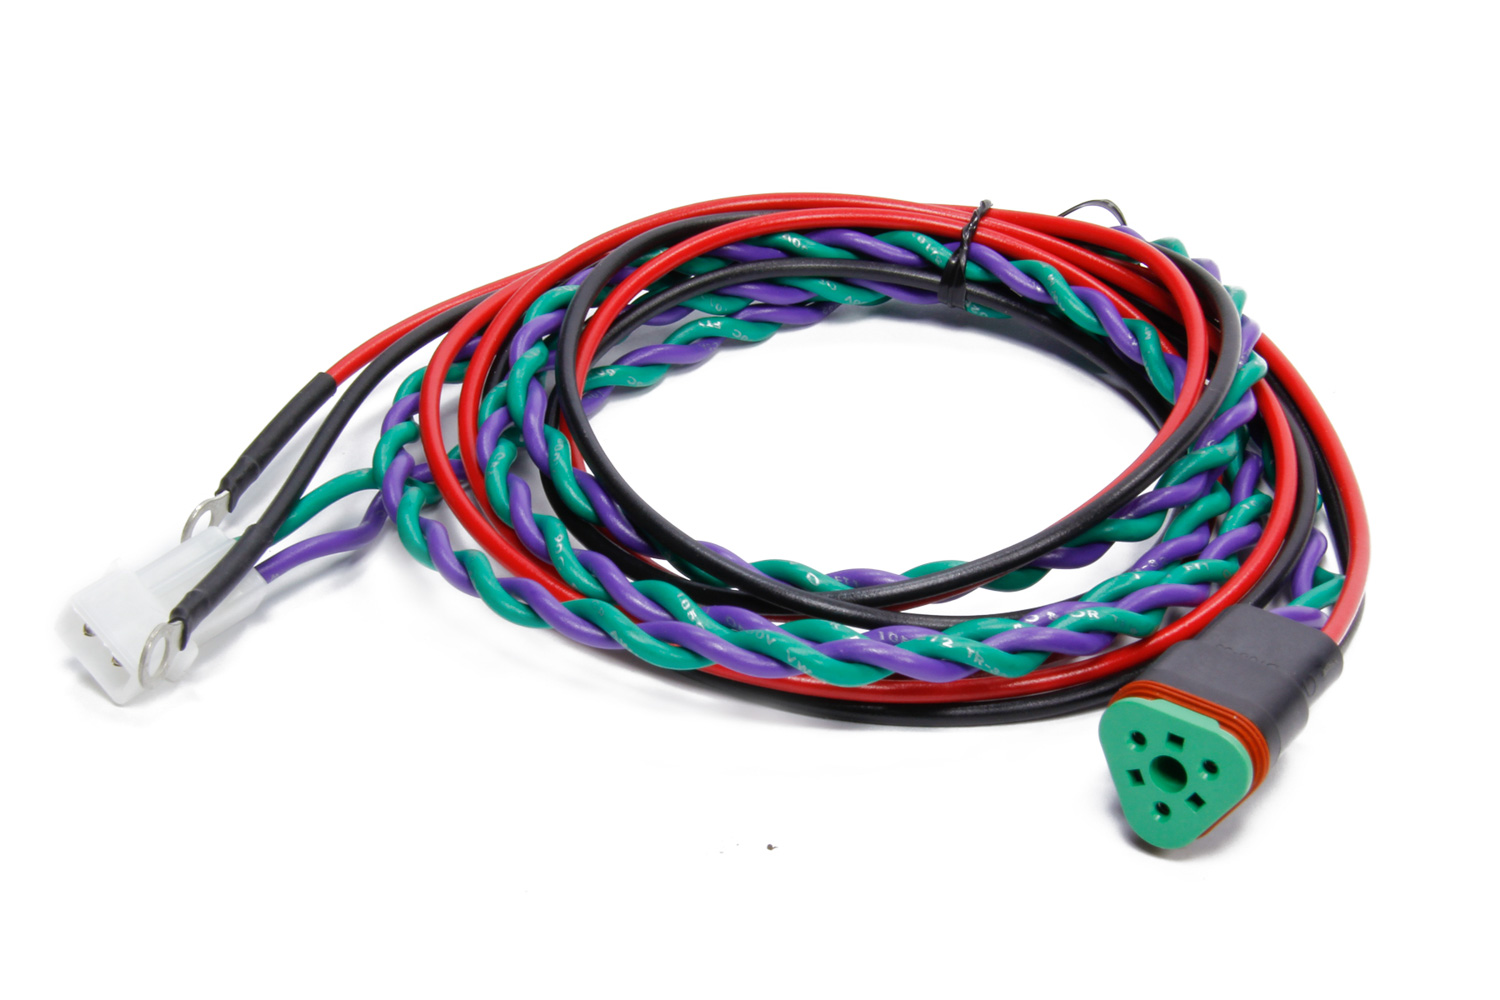 Shop For Fast Electronics Wiring Harnesses Etheridge Race Parts Efi Wire Harness 4 Pin Distributor To Msd